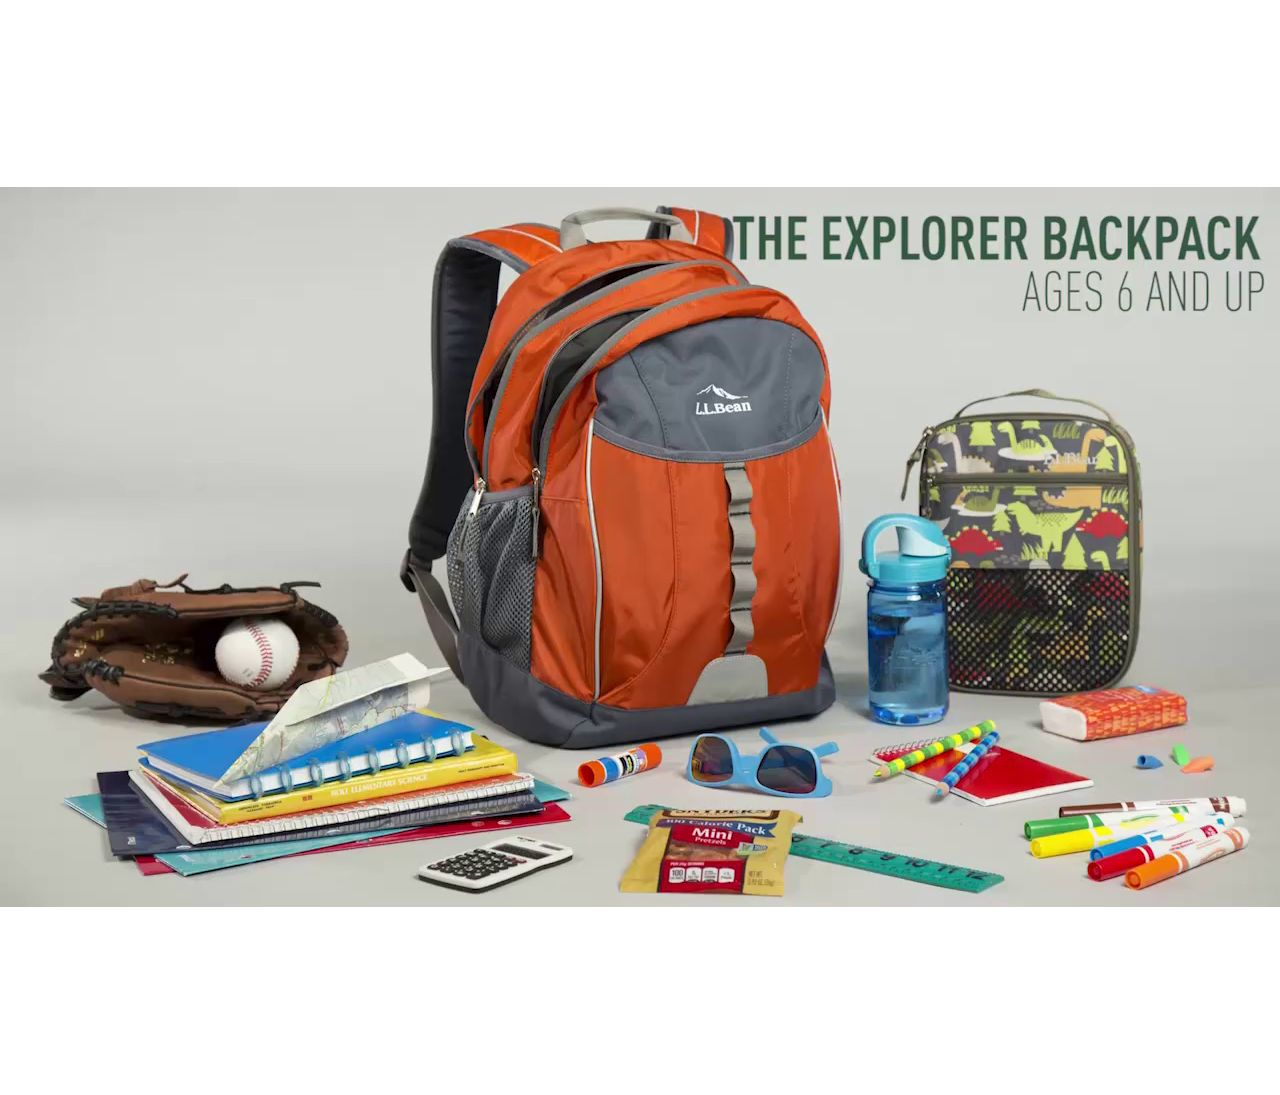 Video: Explorer Backpack